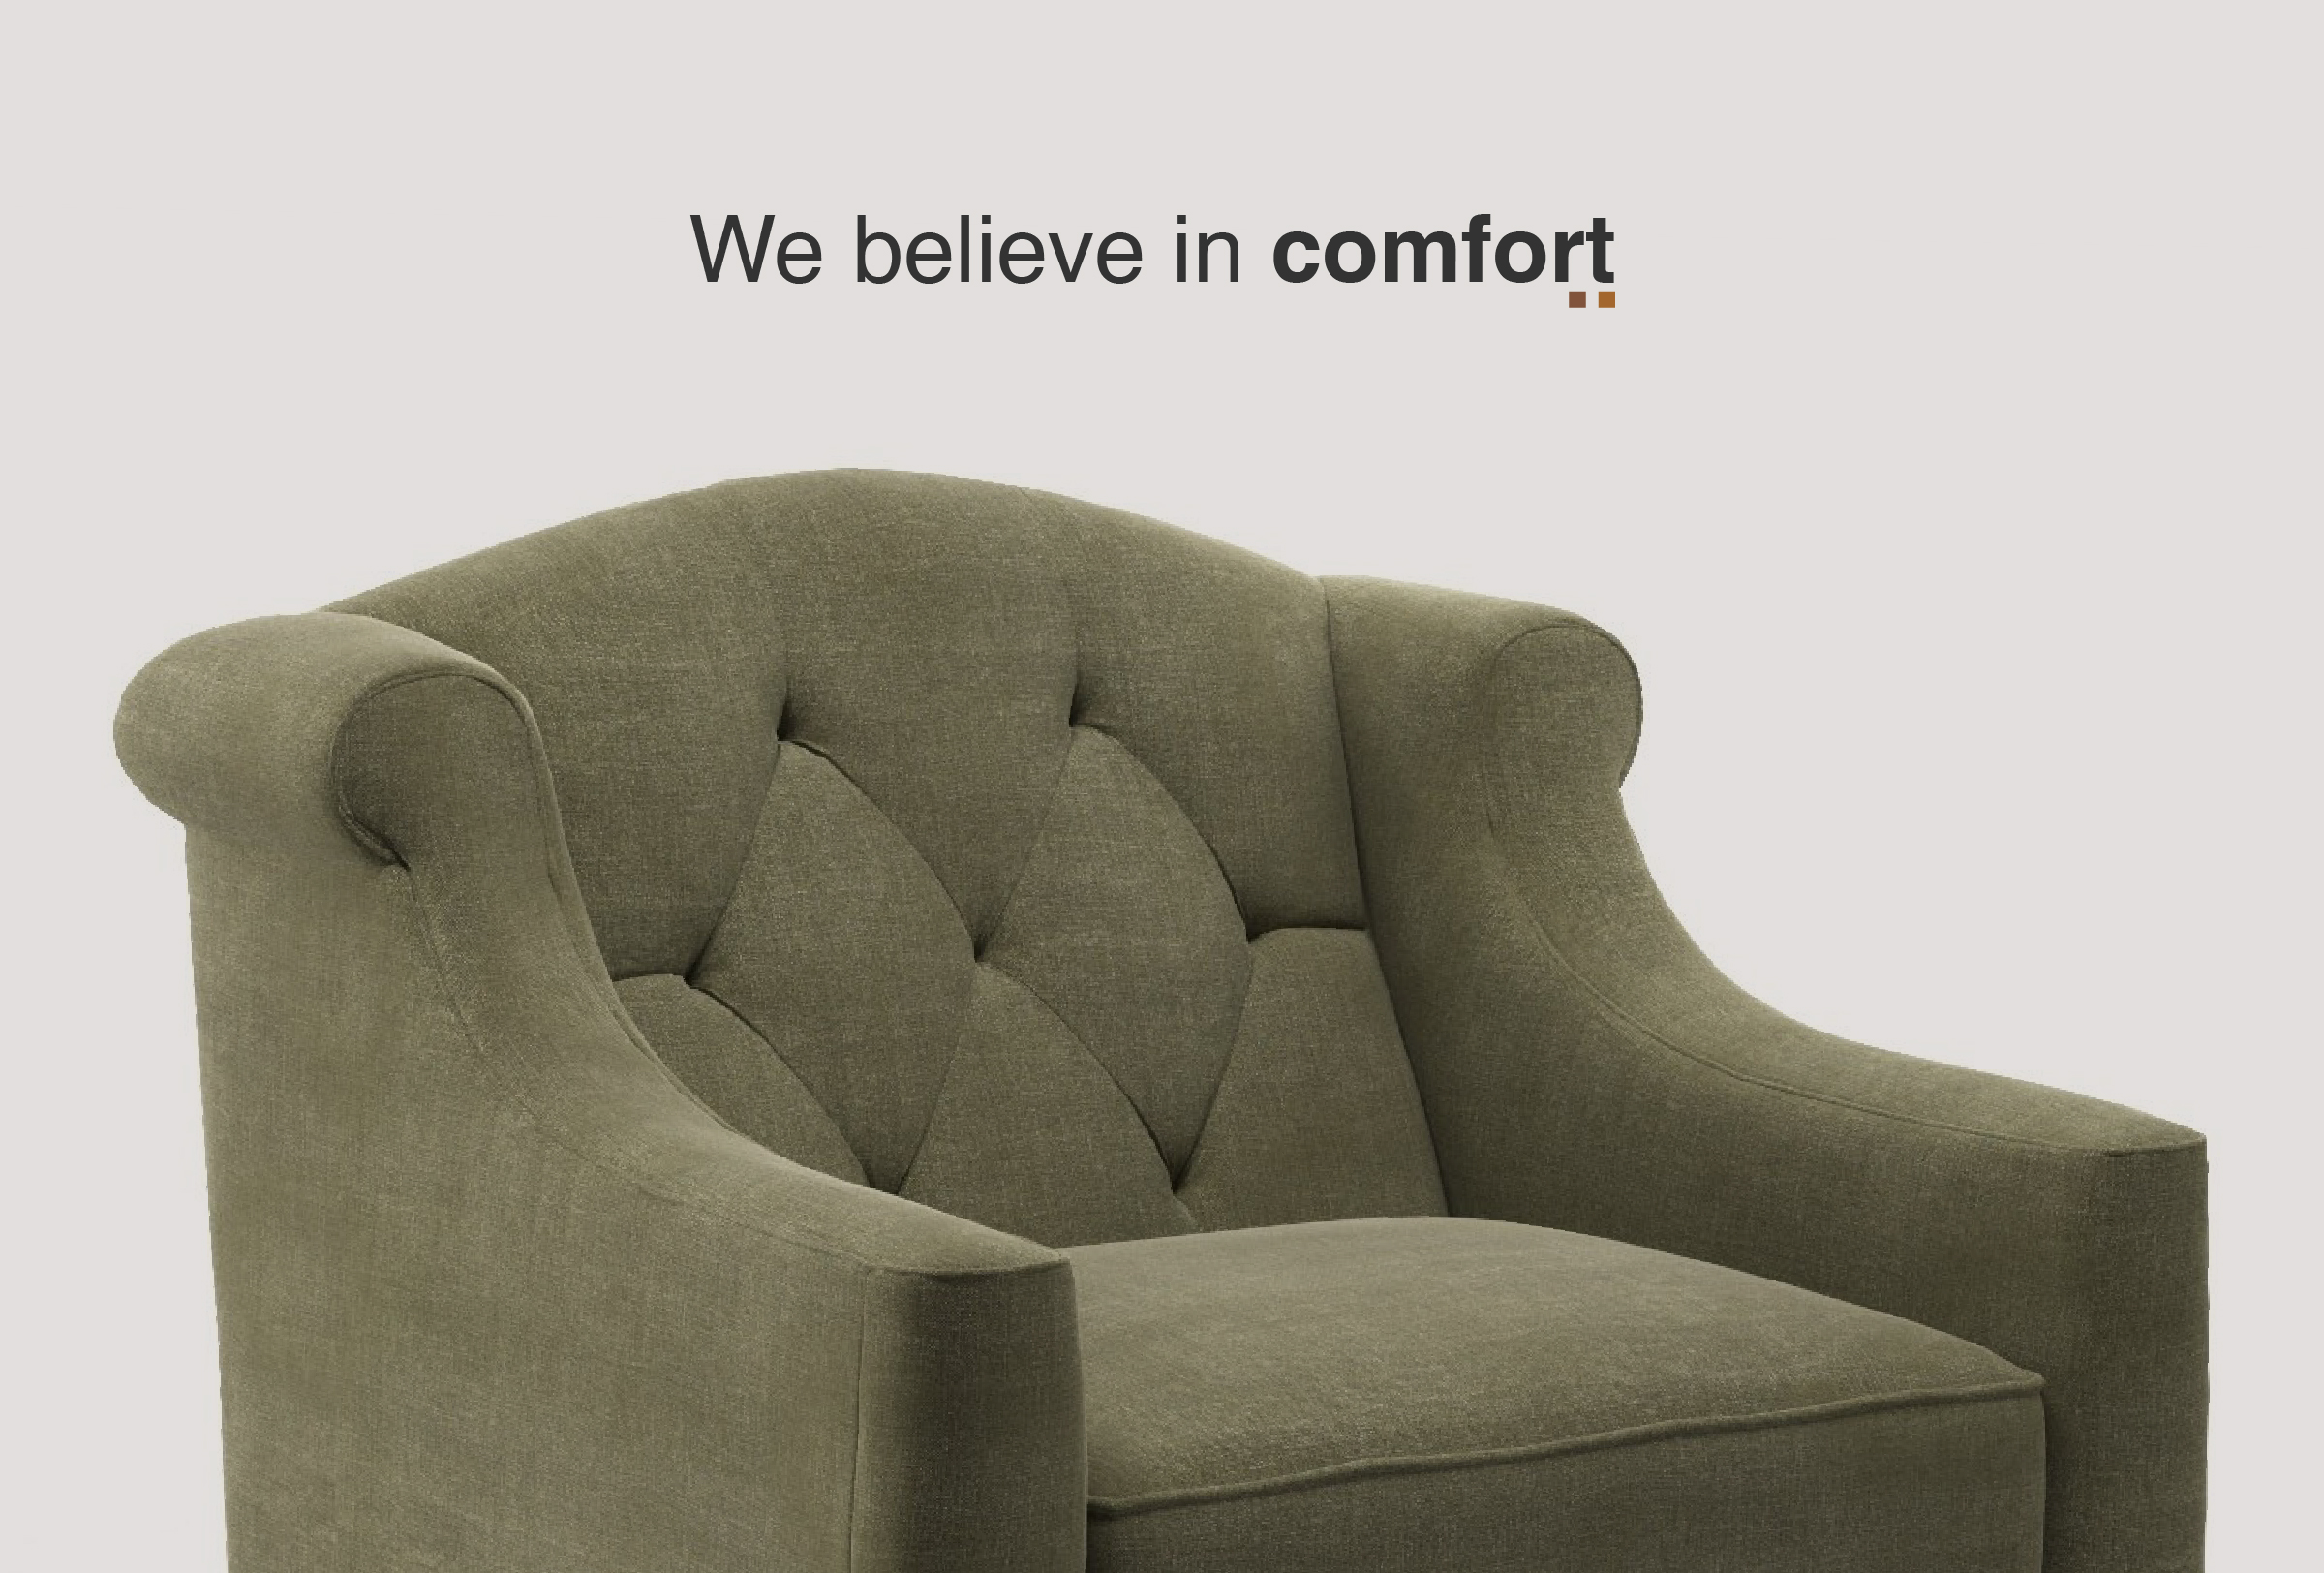 We belive in comfort